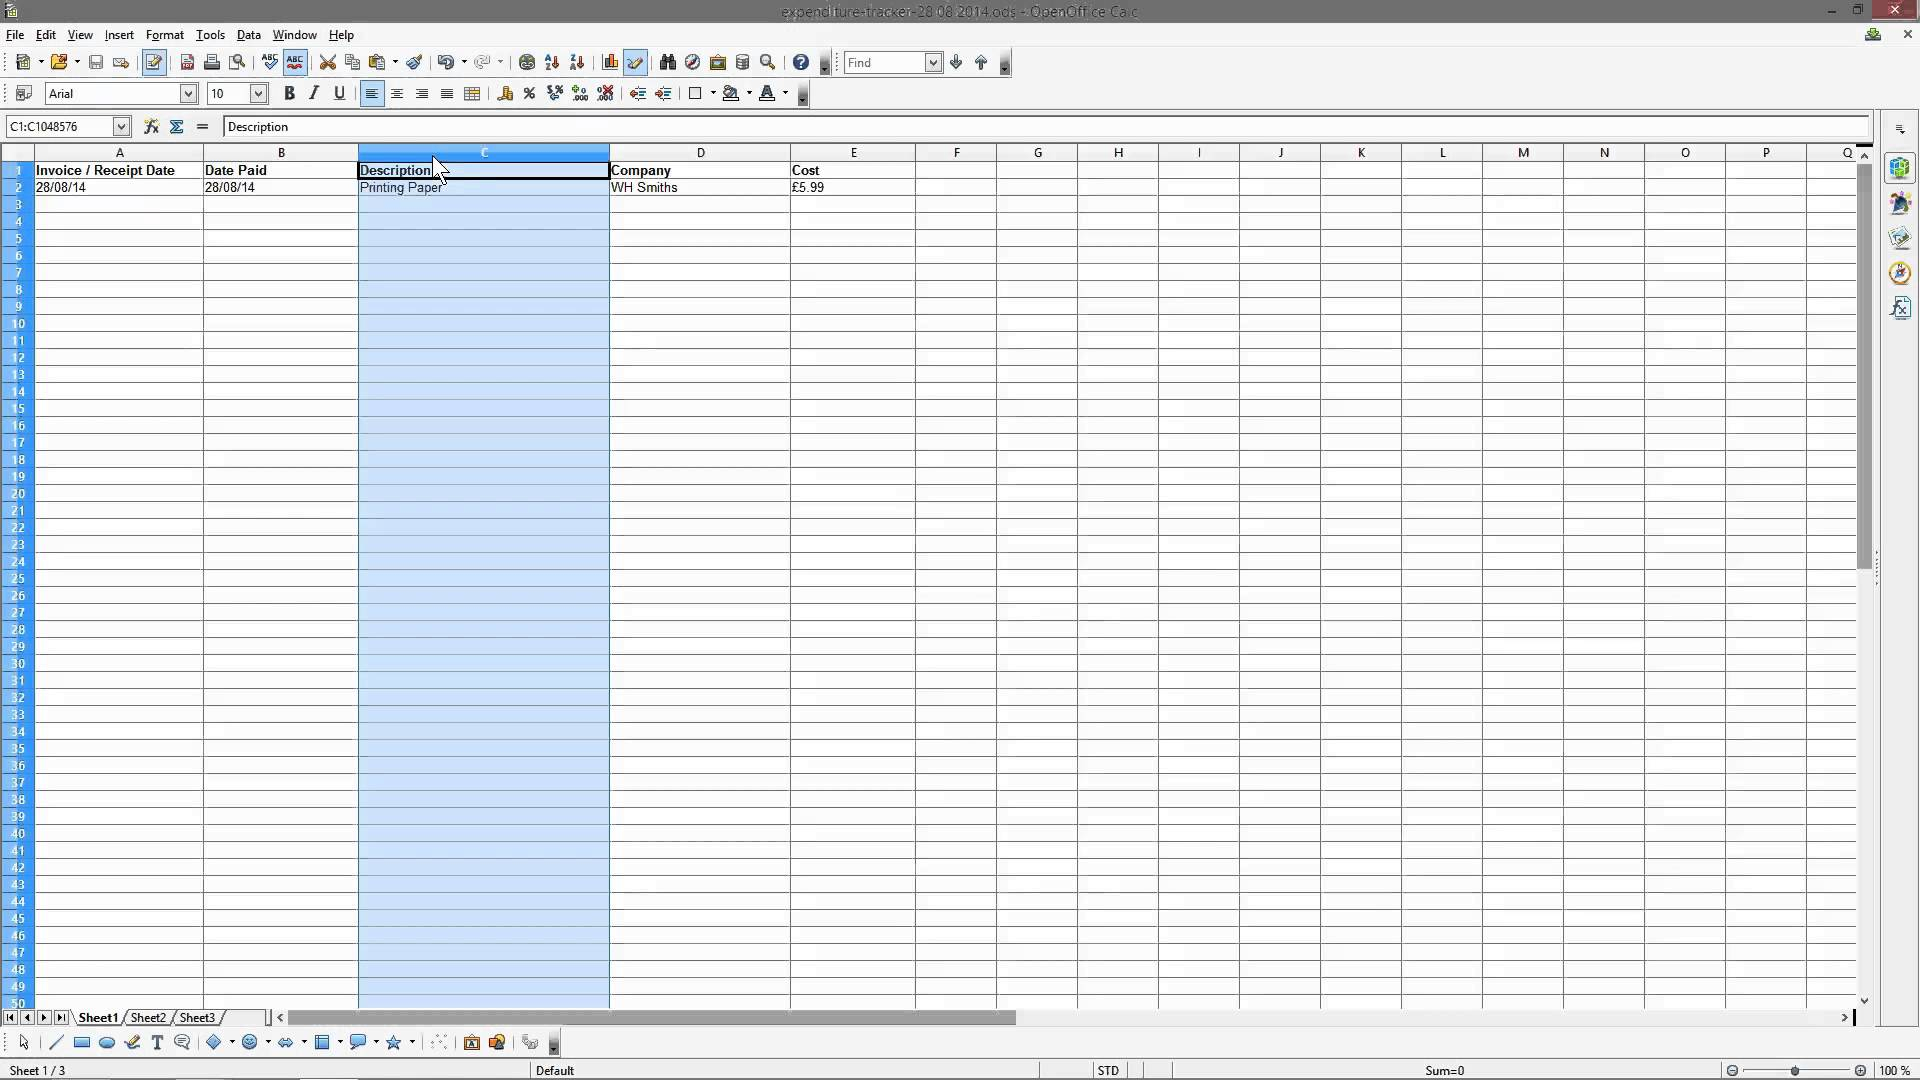 Income And Expenses Spreadsheet For Small Business Throughout Expenses Spreadsheet Template For Small Business